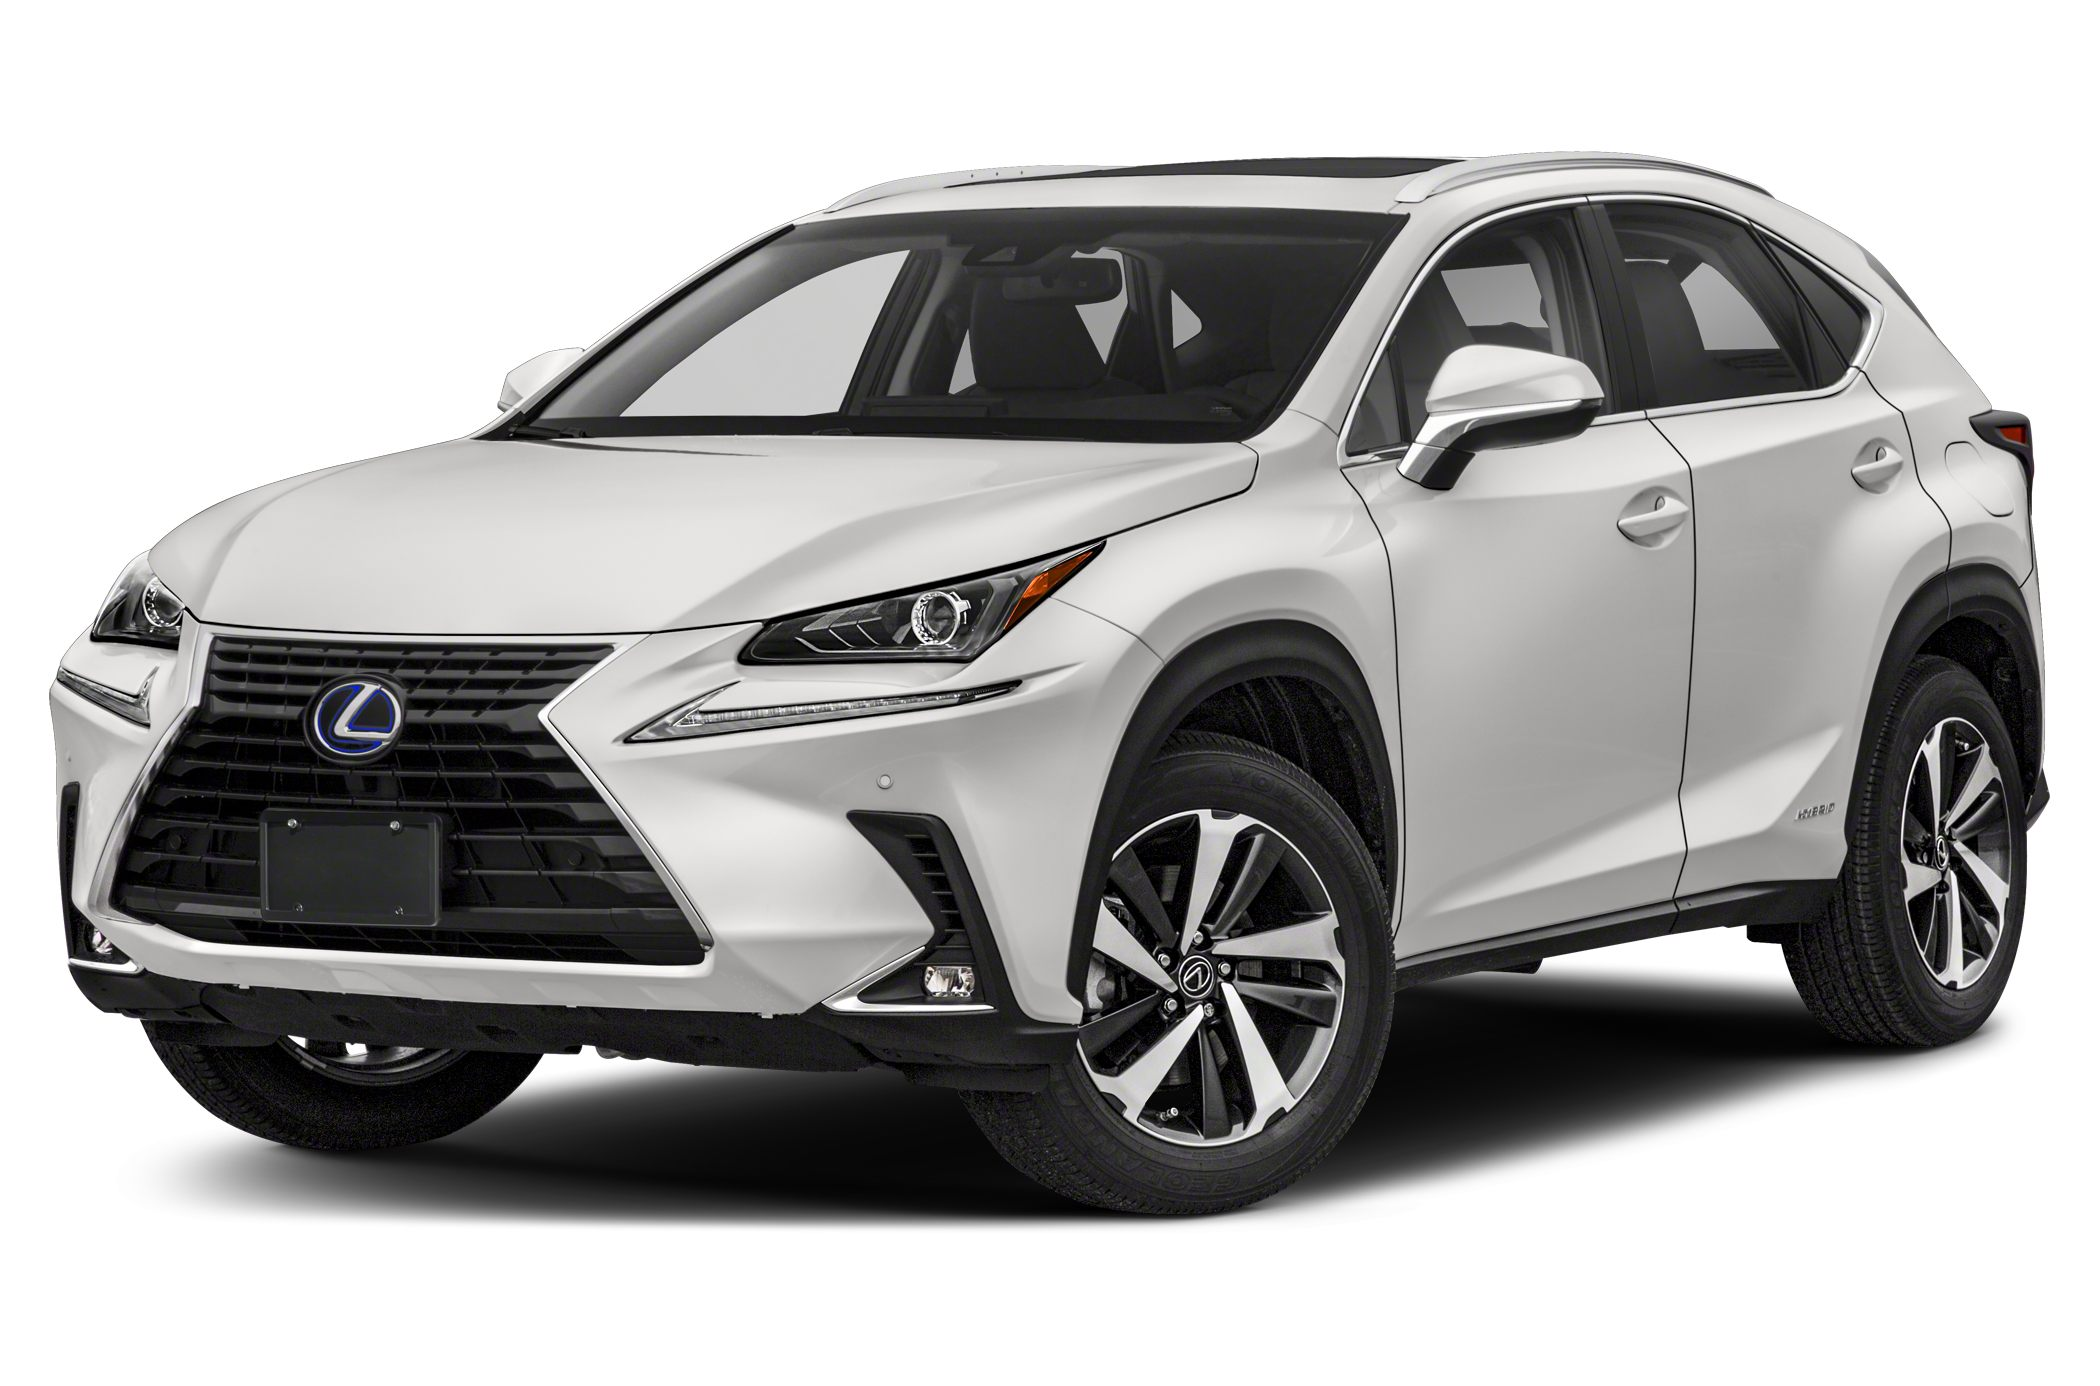 2019 Nx 300h Owner Reviews